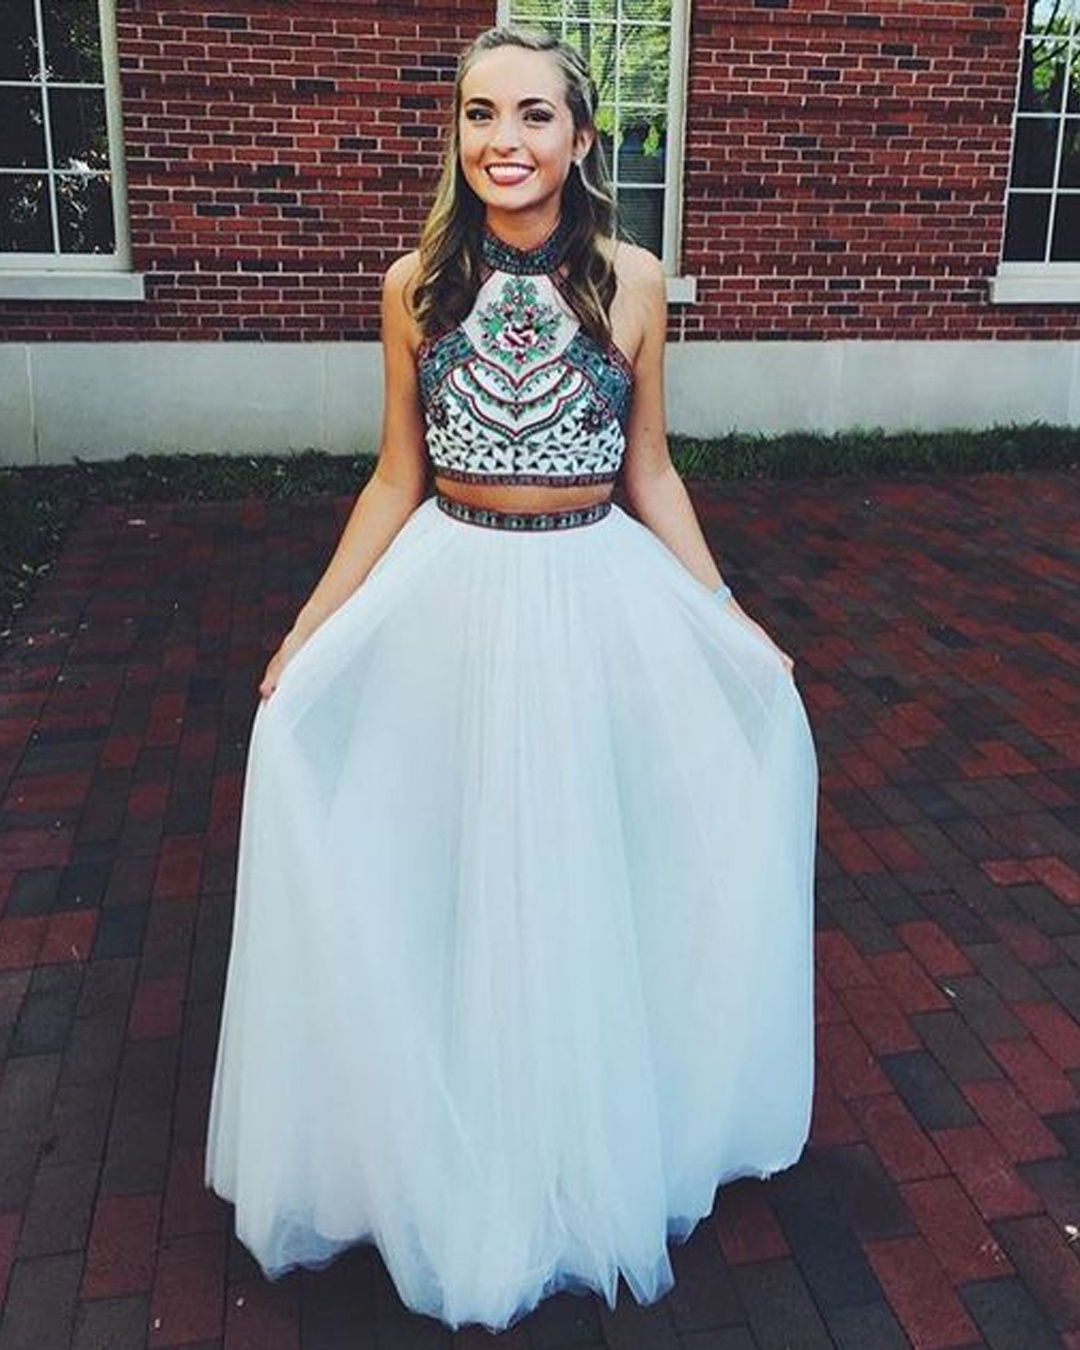 db643f7f4bf Cute Halter Neck White Open Back Two Piece Tulle Prom  Homecoming Dress  with Embroidery HC0039